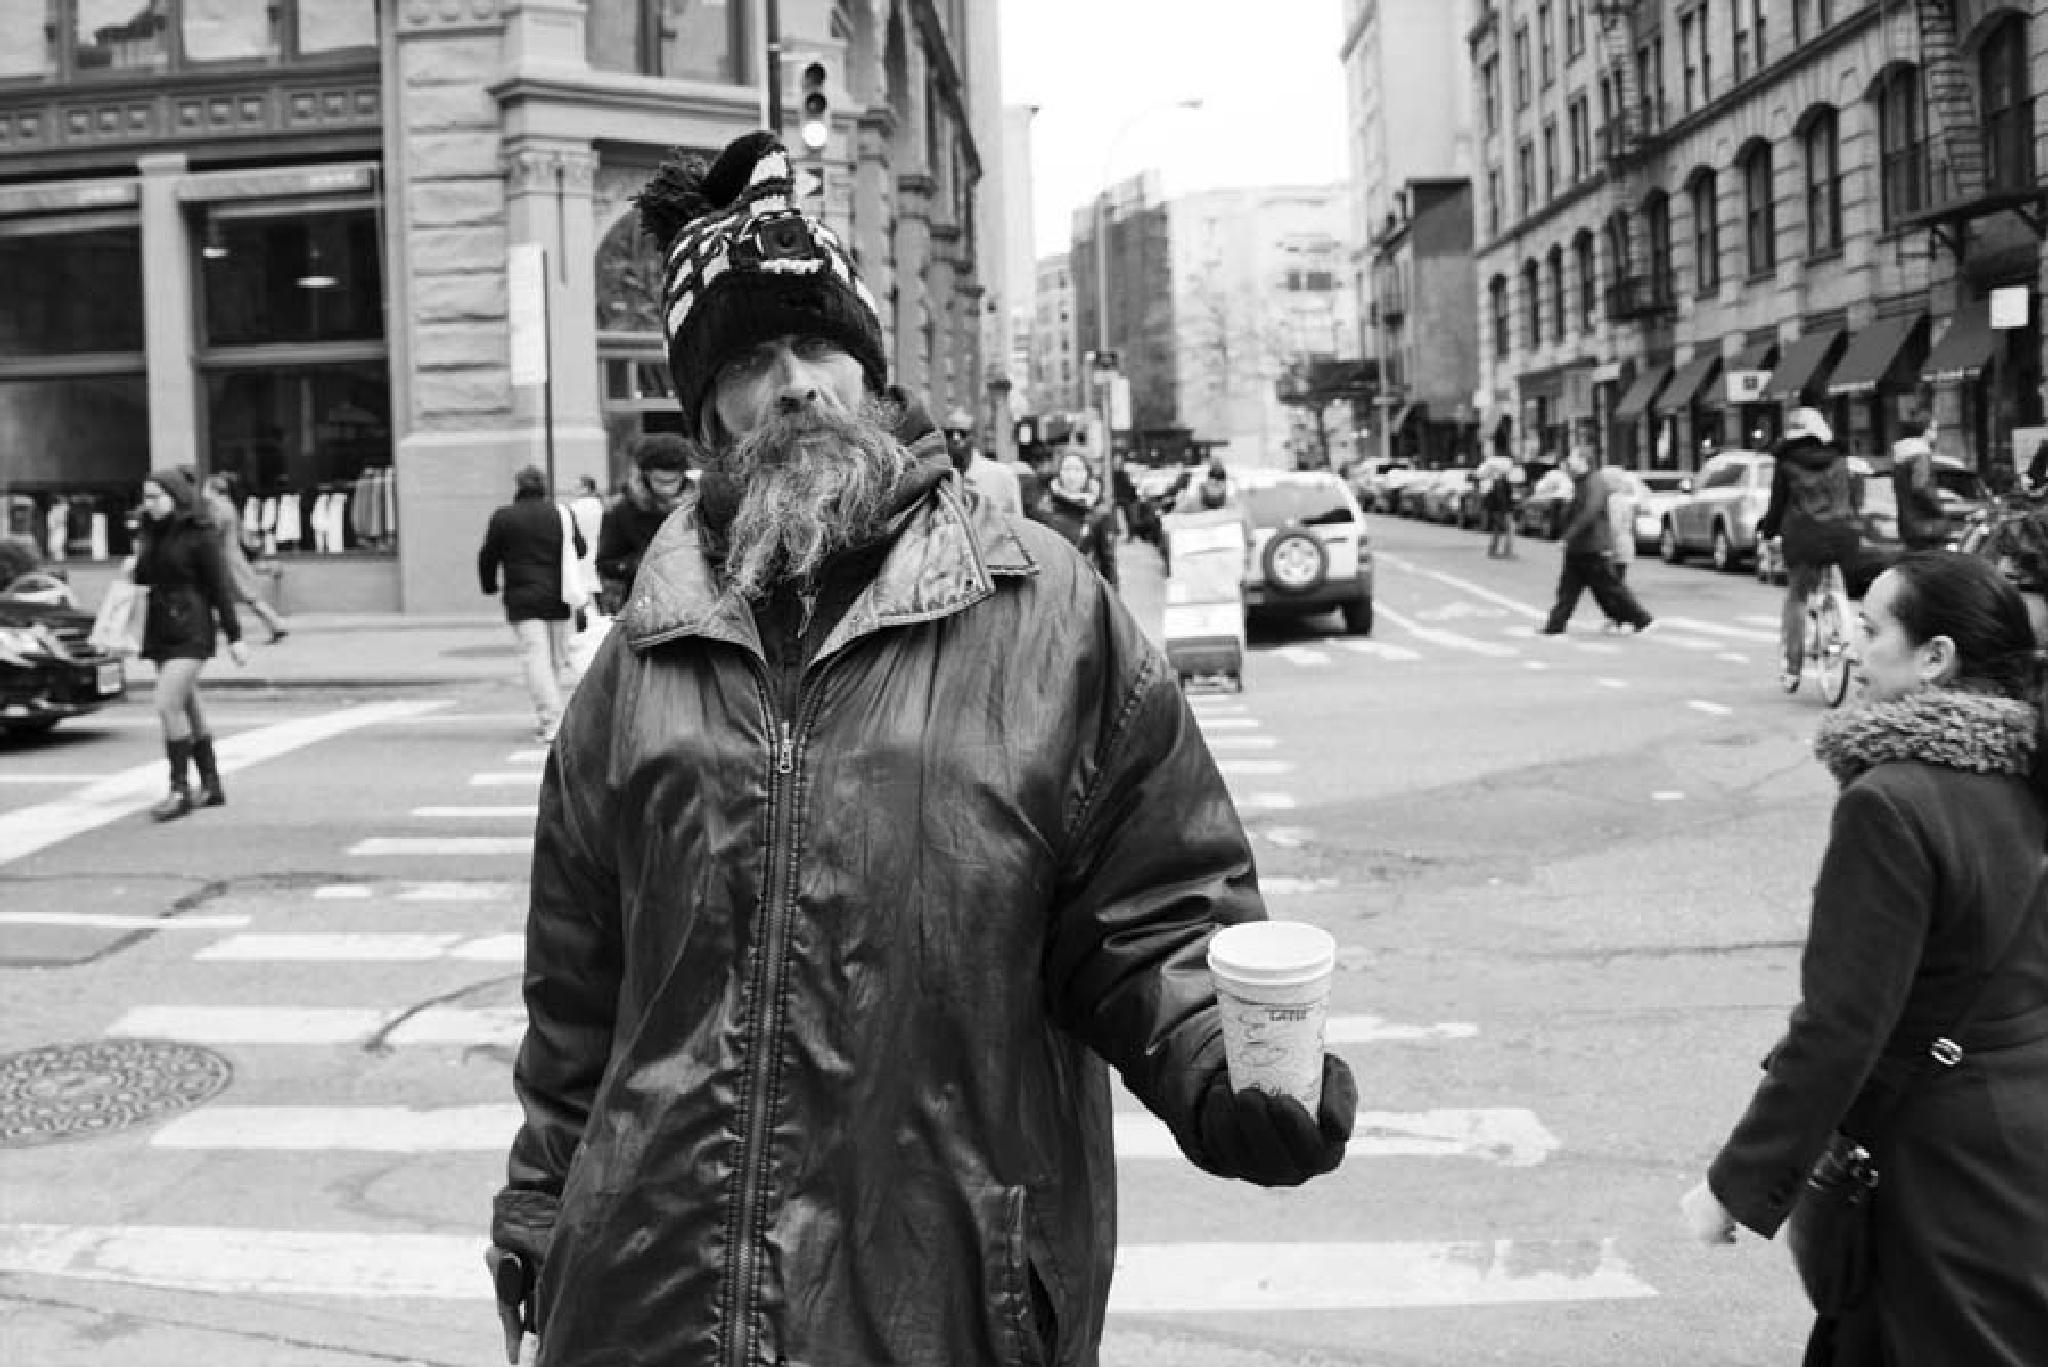 Happy Panhandler by bhlevy